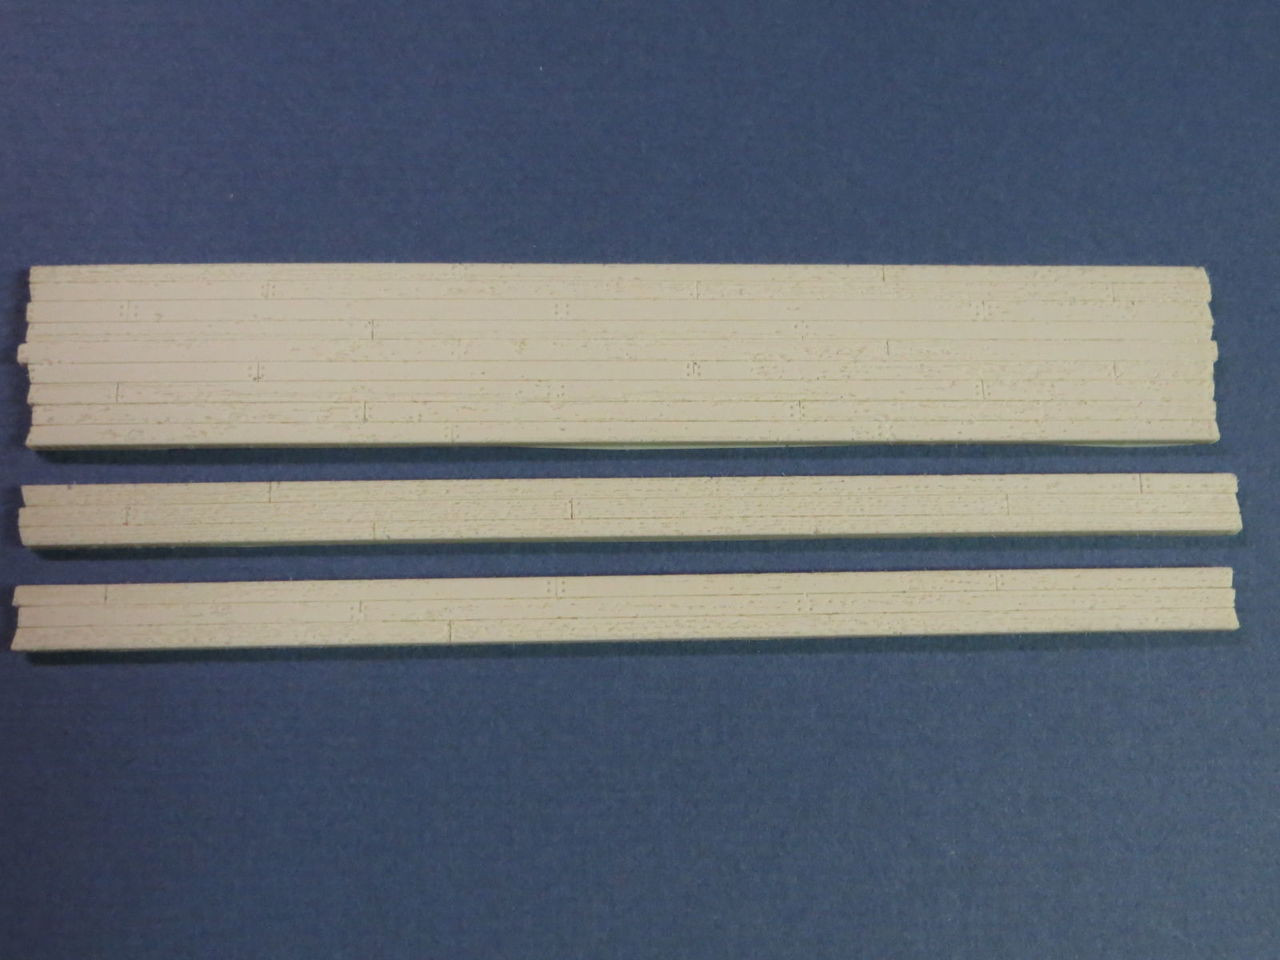 48-3002 2 Rail O Scale Wood Grade Crossing Kit Resin Straight EXTREMLY DETAILED!